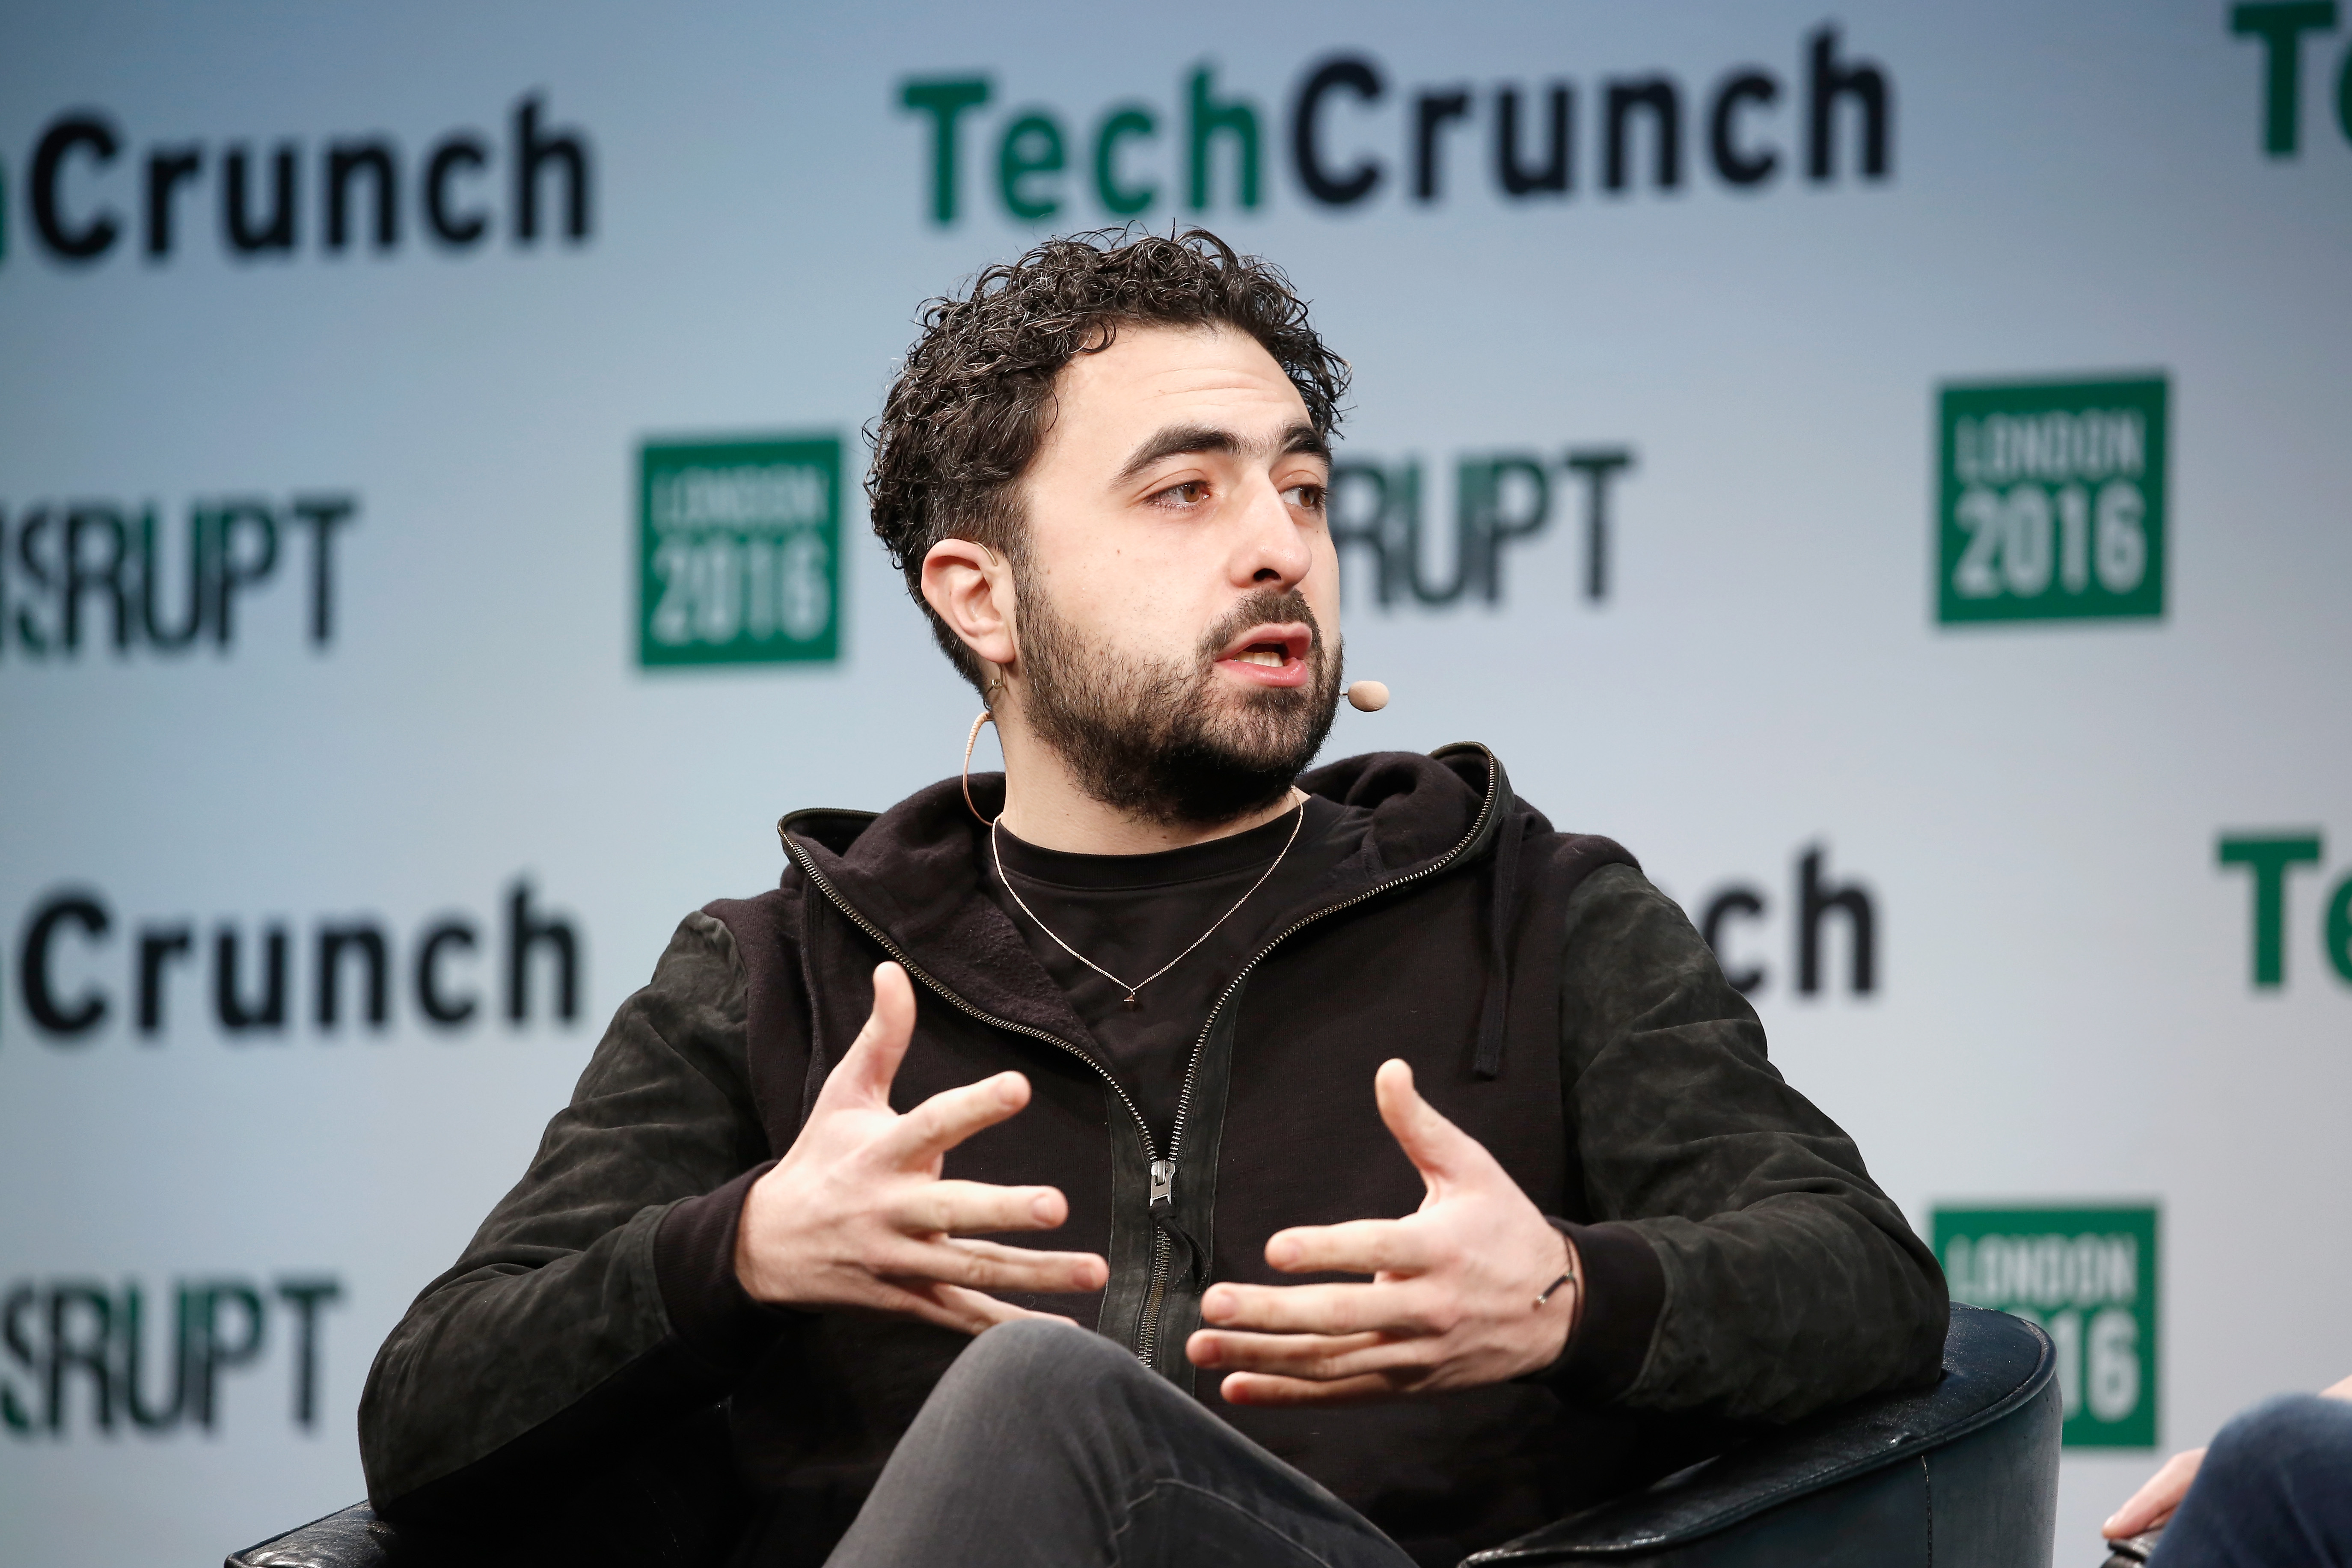 DeepMind co-founder Mustafa Suleyman in 2016